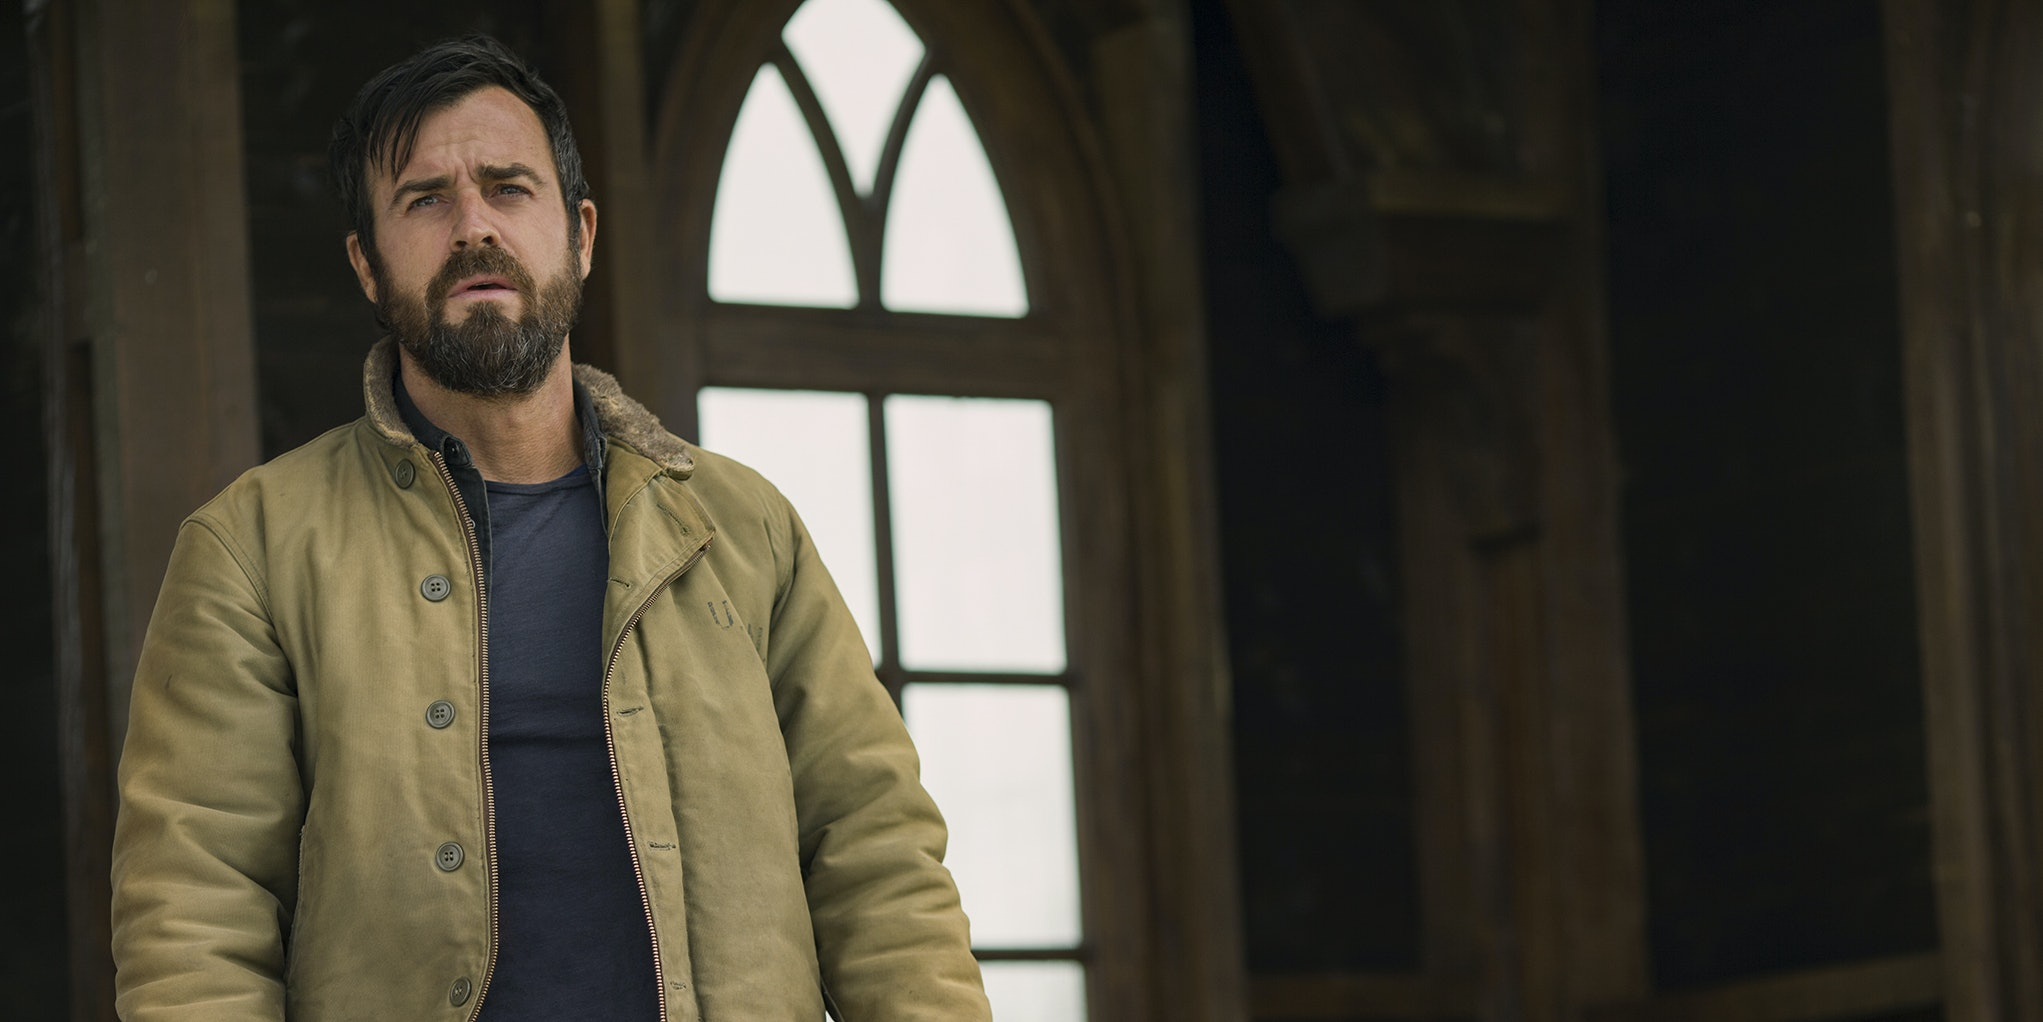 Justin Theroux in Australia in 'The Leftovers' Season 3